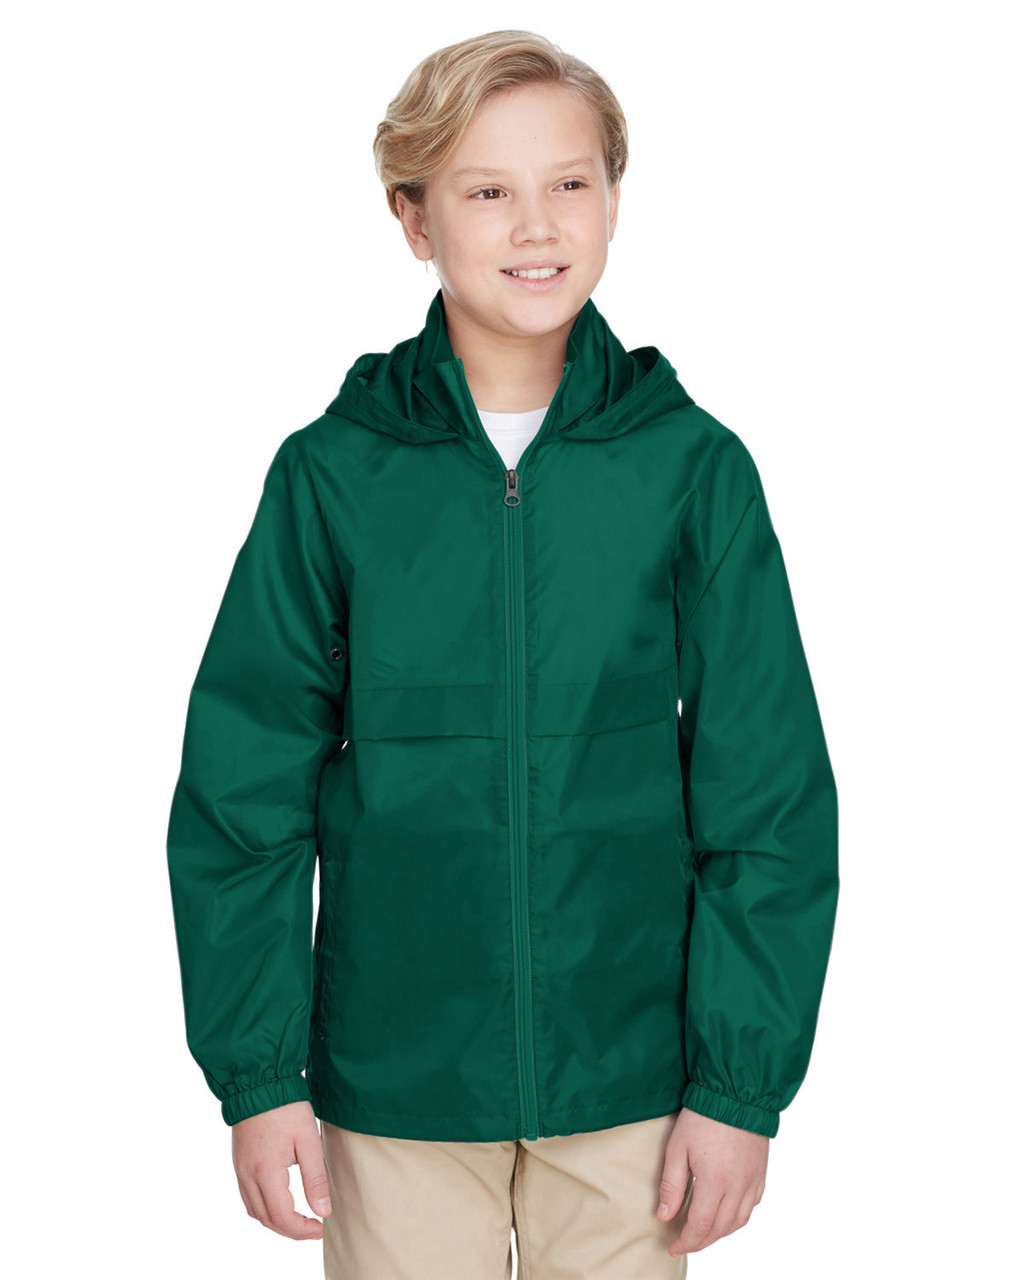 Sport Forest - TT73Y Team 365 Youth Zone Protect Lightweight Jacket  | BlankClothing.ca